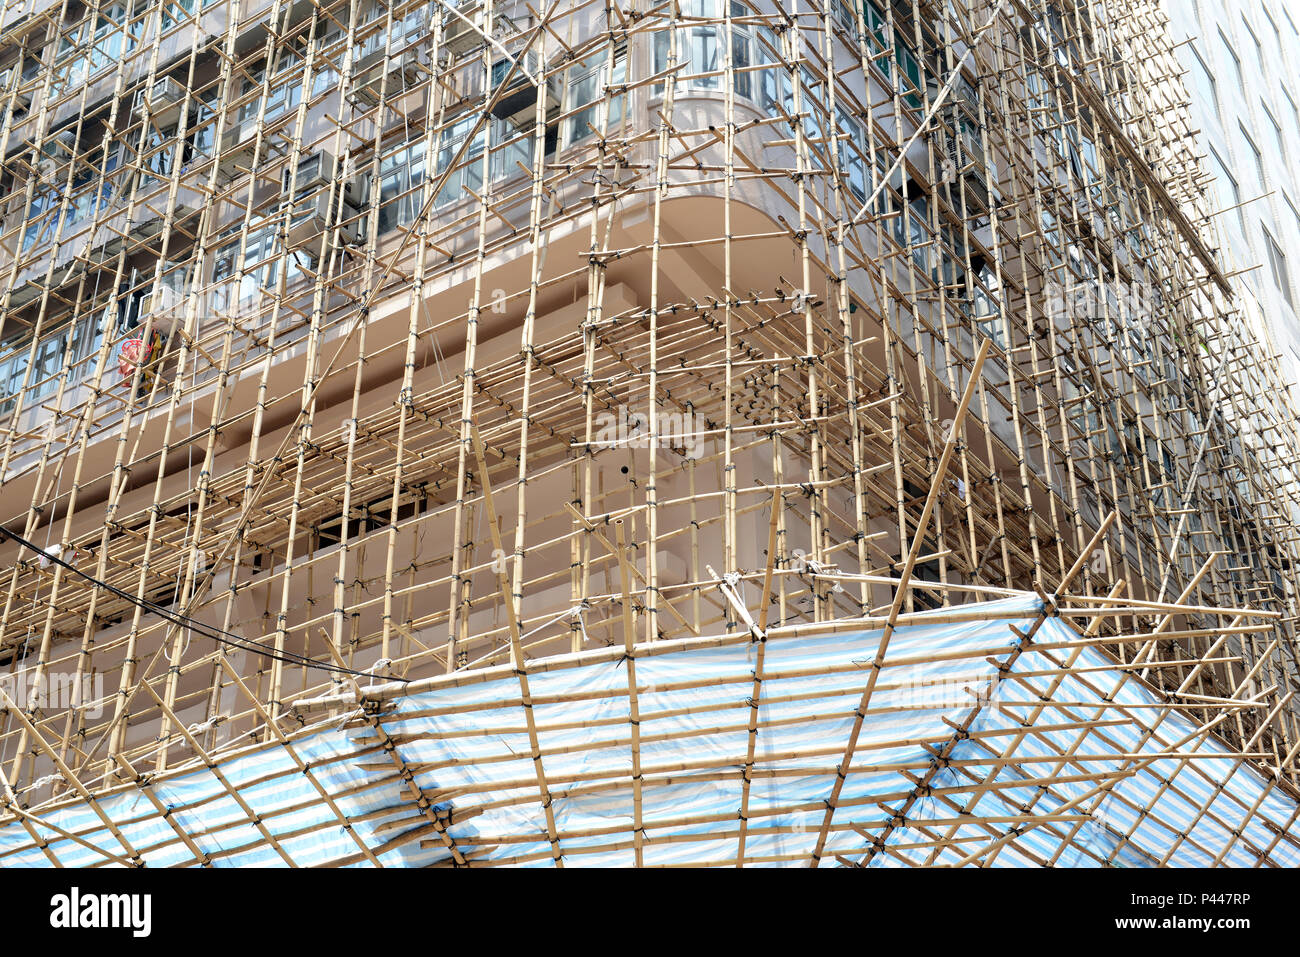 In Hong Kong and China and other parts of Asia, bamboo is often used for scaffolding for real estate construction in place of steel or iron scaffolds - Stock Image